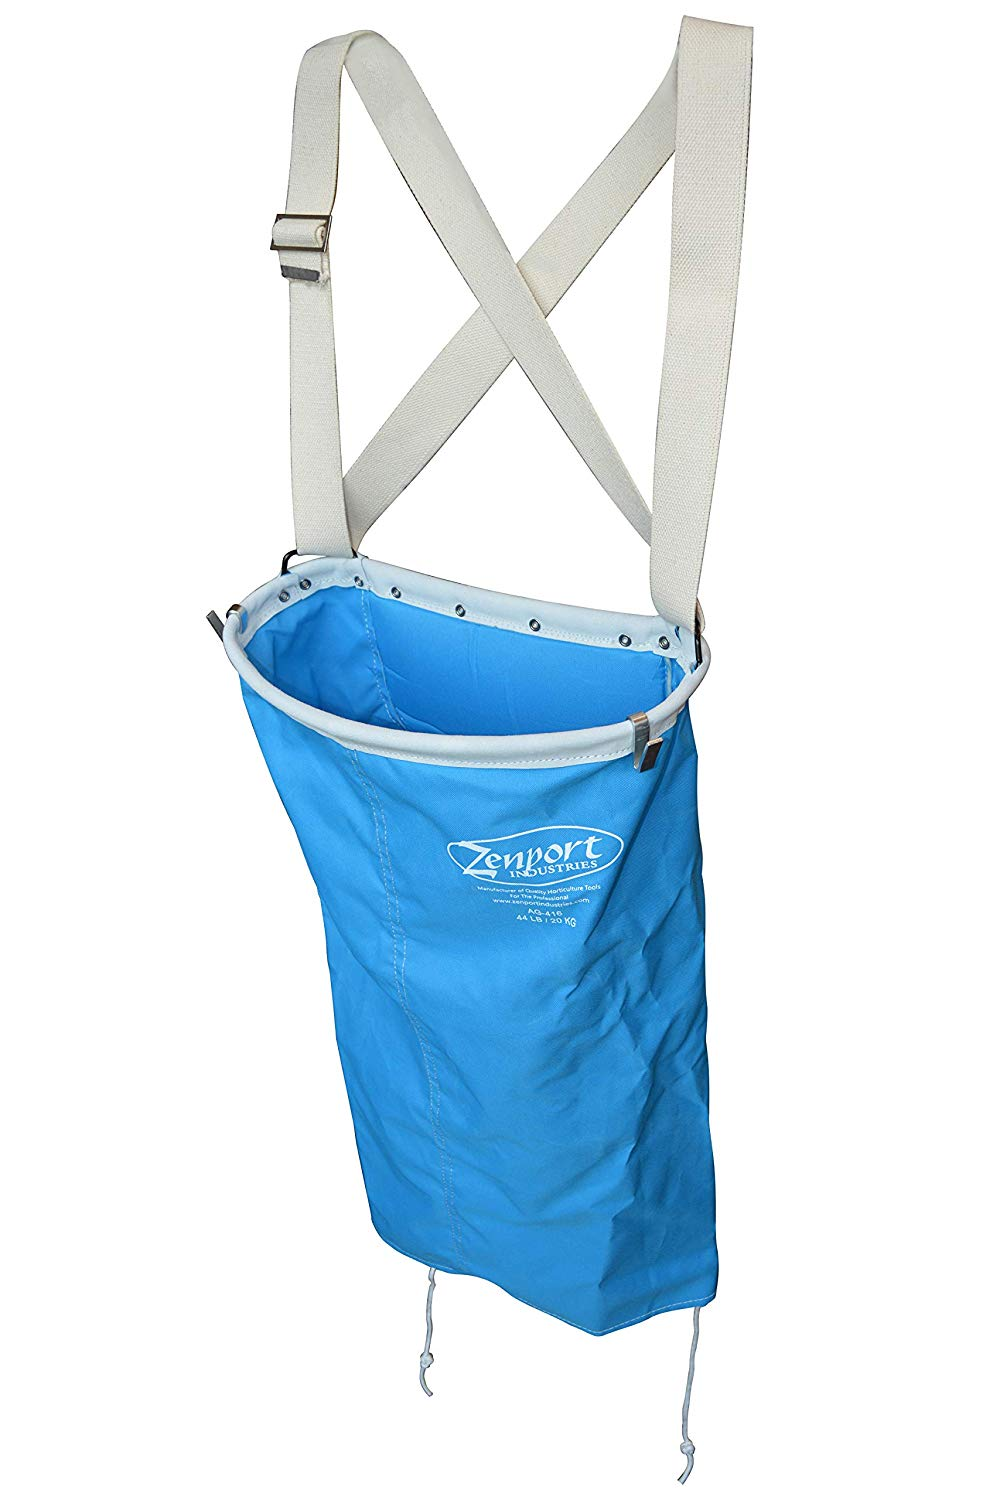 Picking Bag AG416 AgriKon 44-Pound Wire Rim Soft Shell Harvest Fruit, Pear/Apple Picking Bag